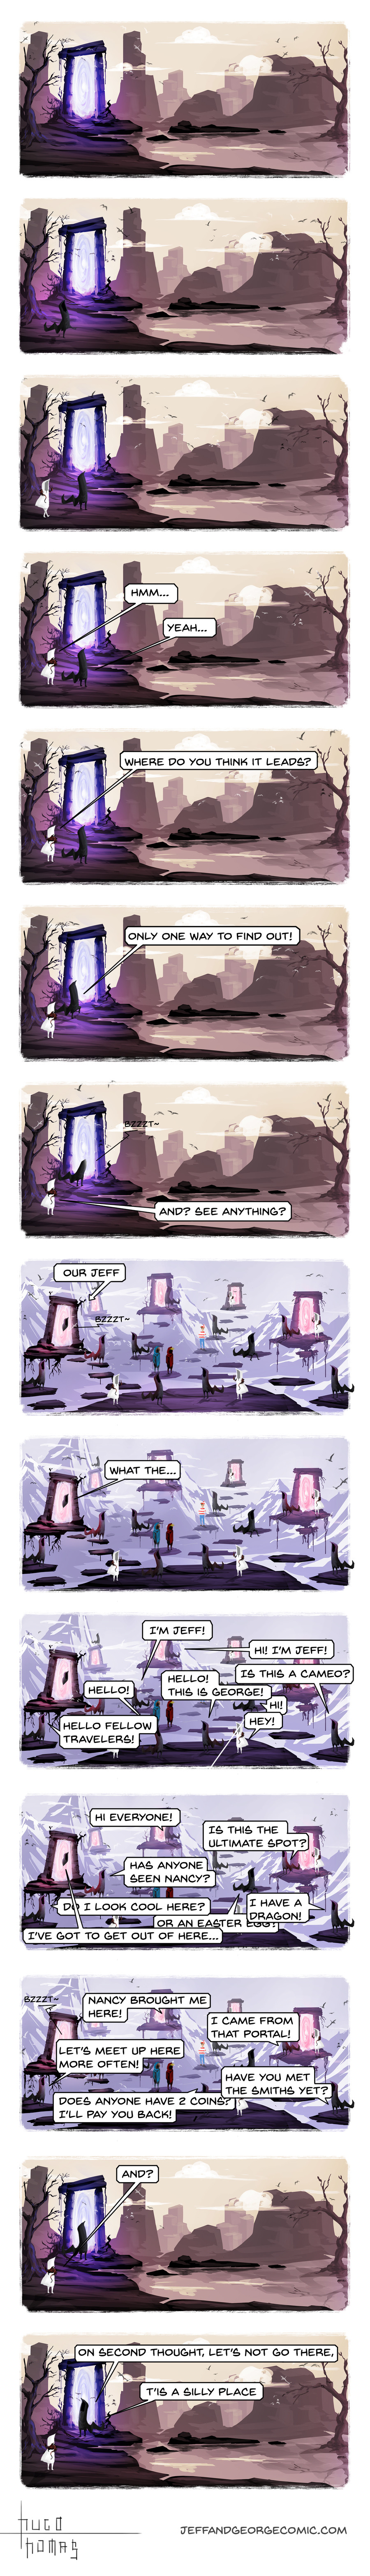 Thinking with portals. It's Friday night! Time for another Jeff and George! I made a patreon, support it at www.patreon.com/jeffandgeorge Previous chapter: If y